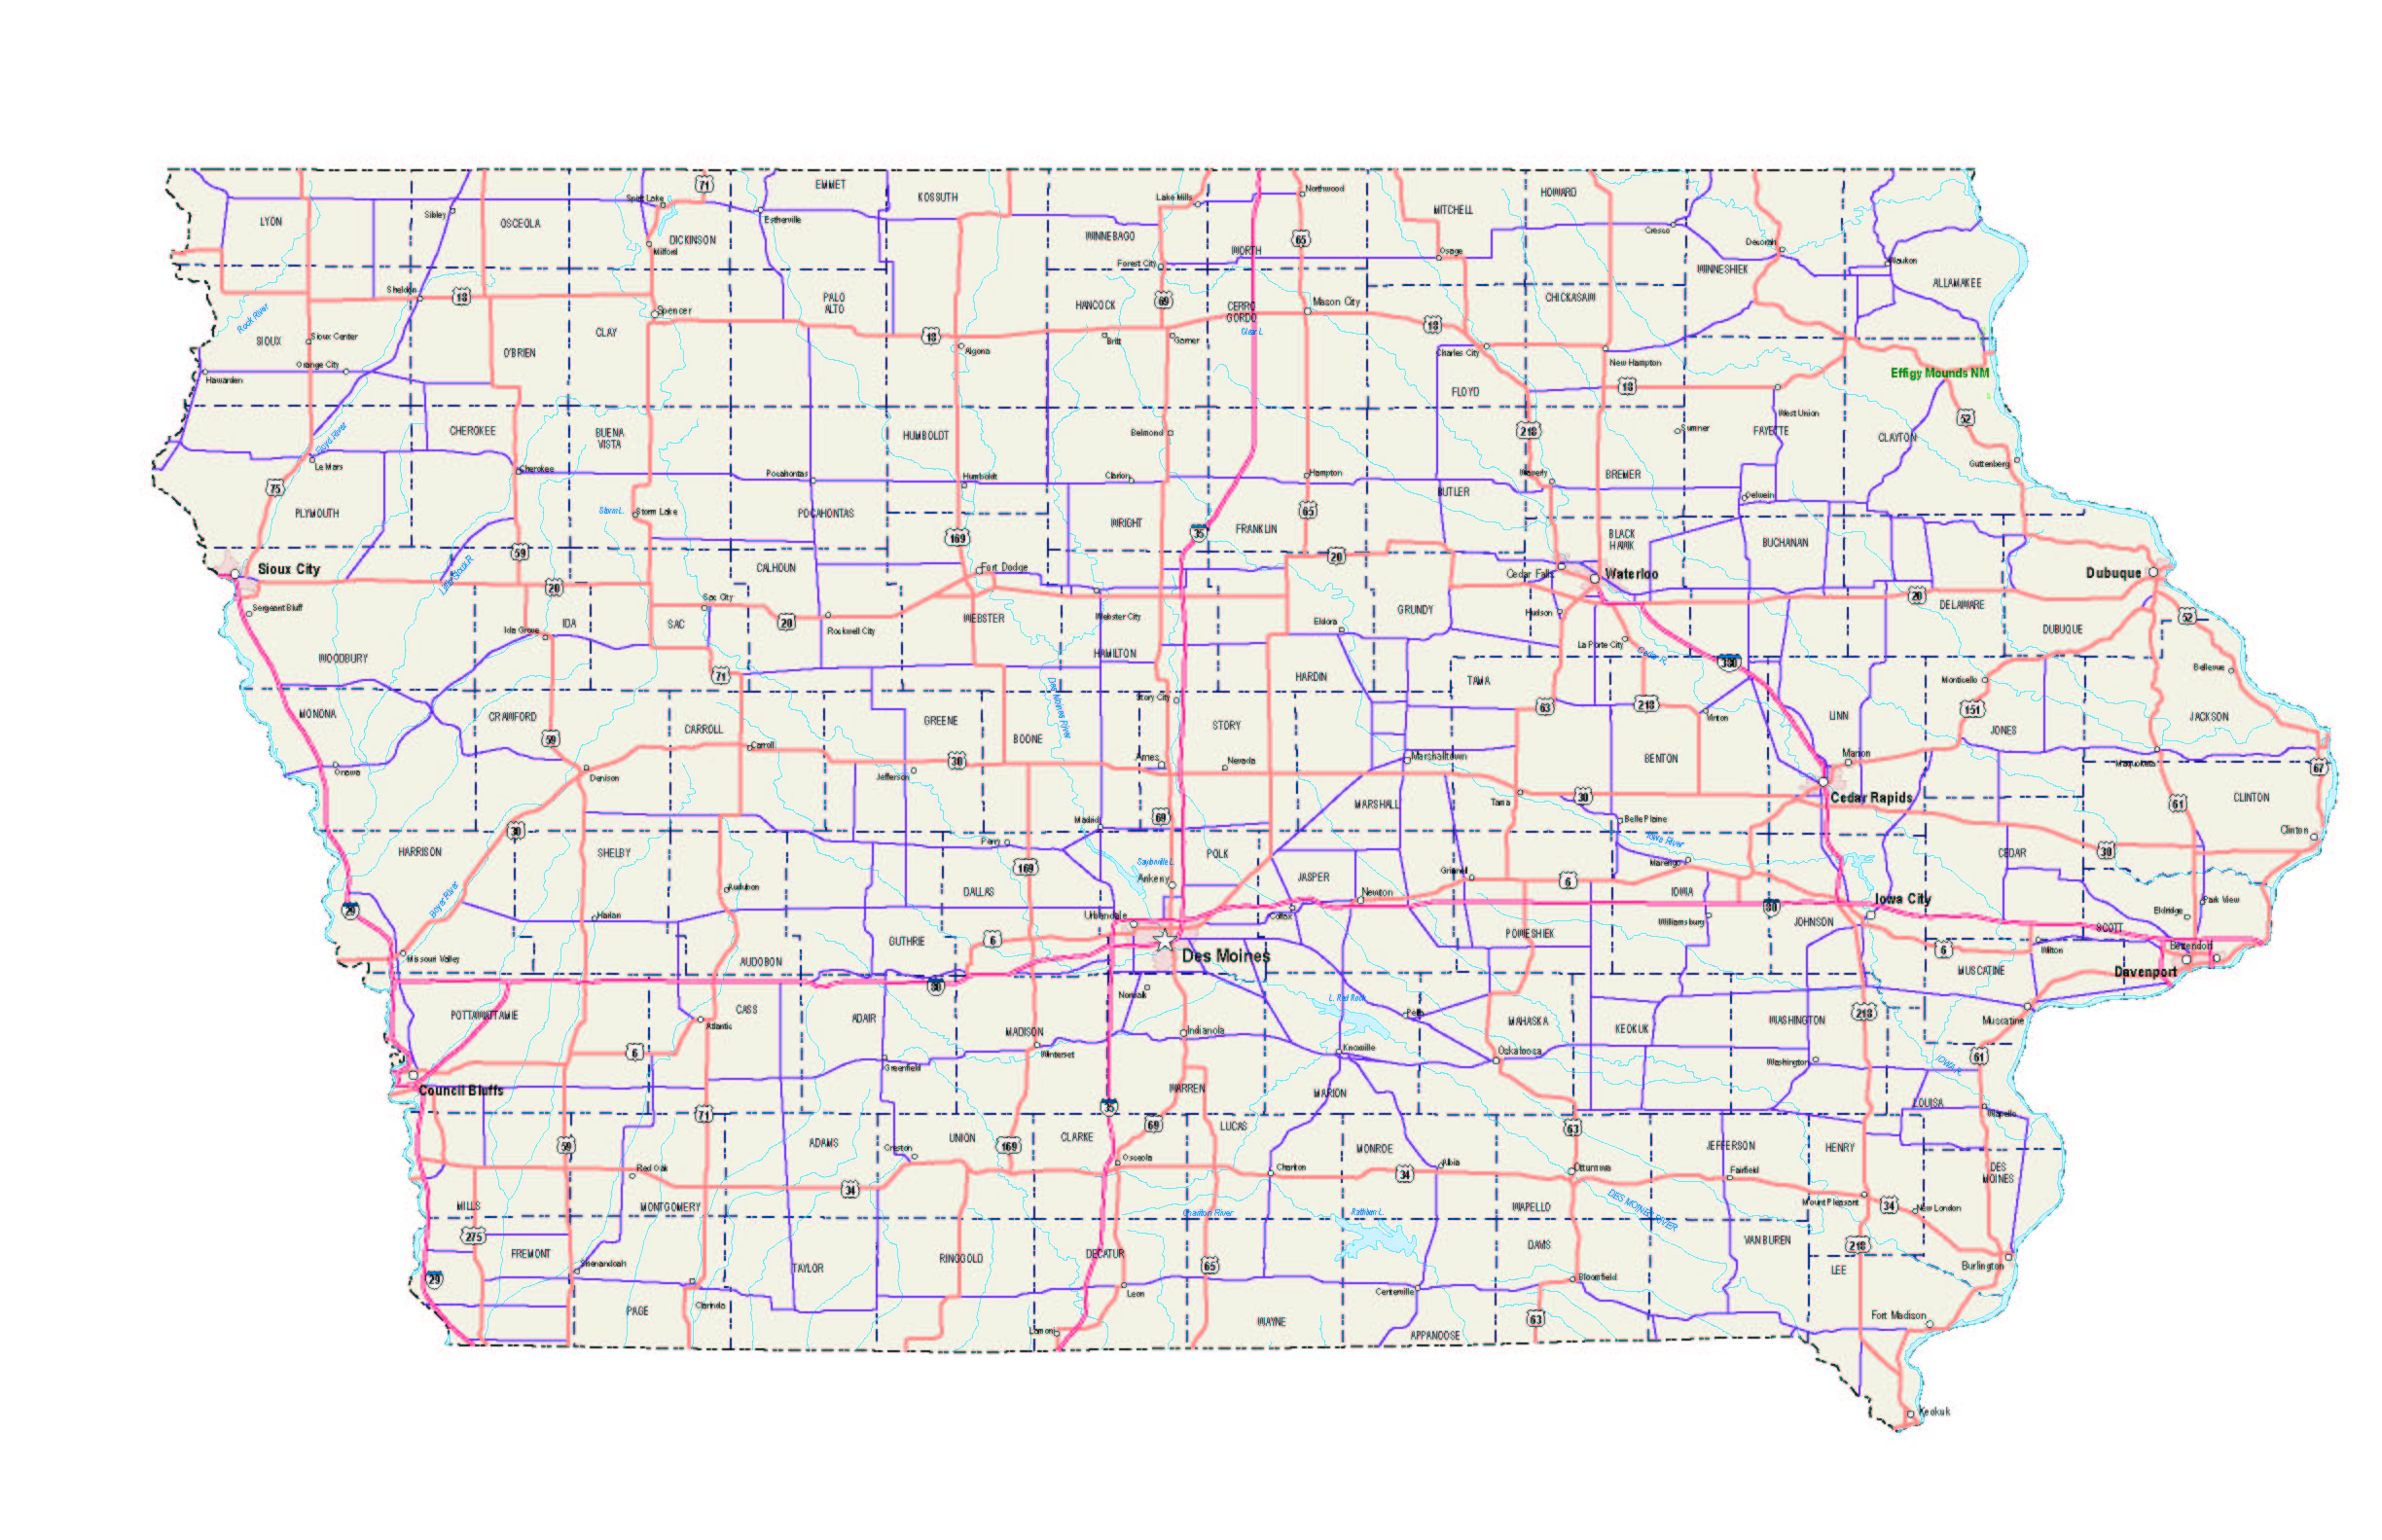 Iowa Maps Iowa Map Iowa Road Map Iowa State Map - Map of iowa counties